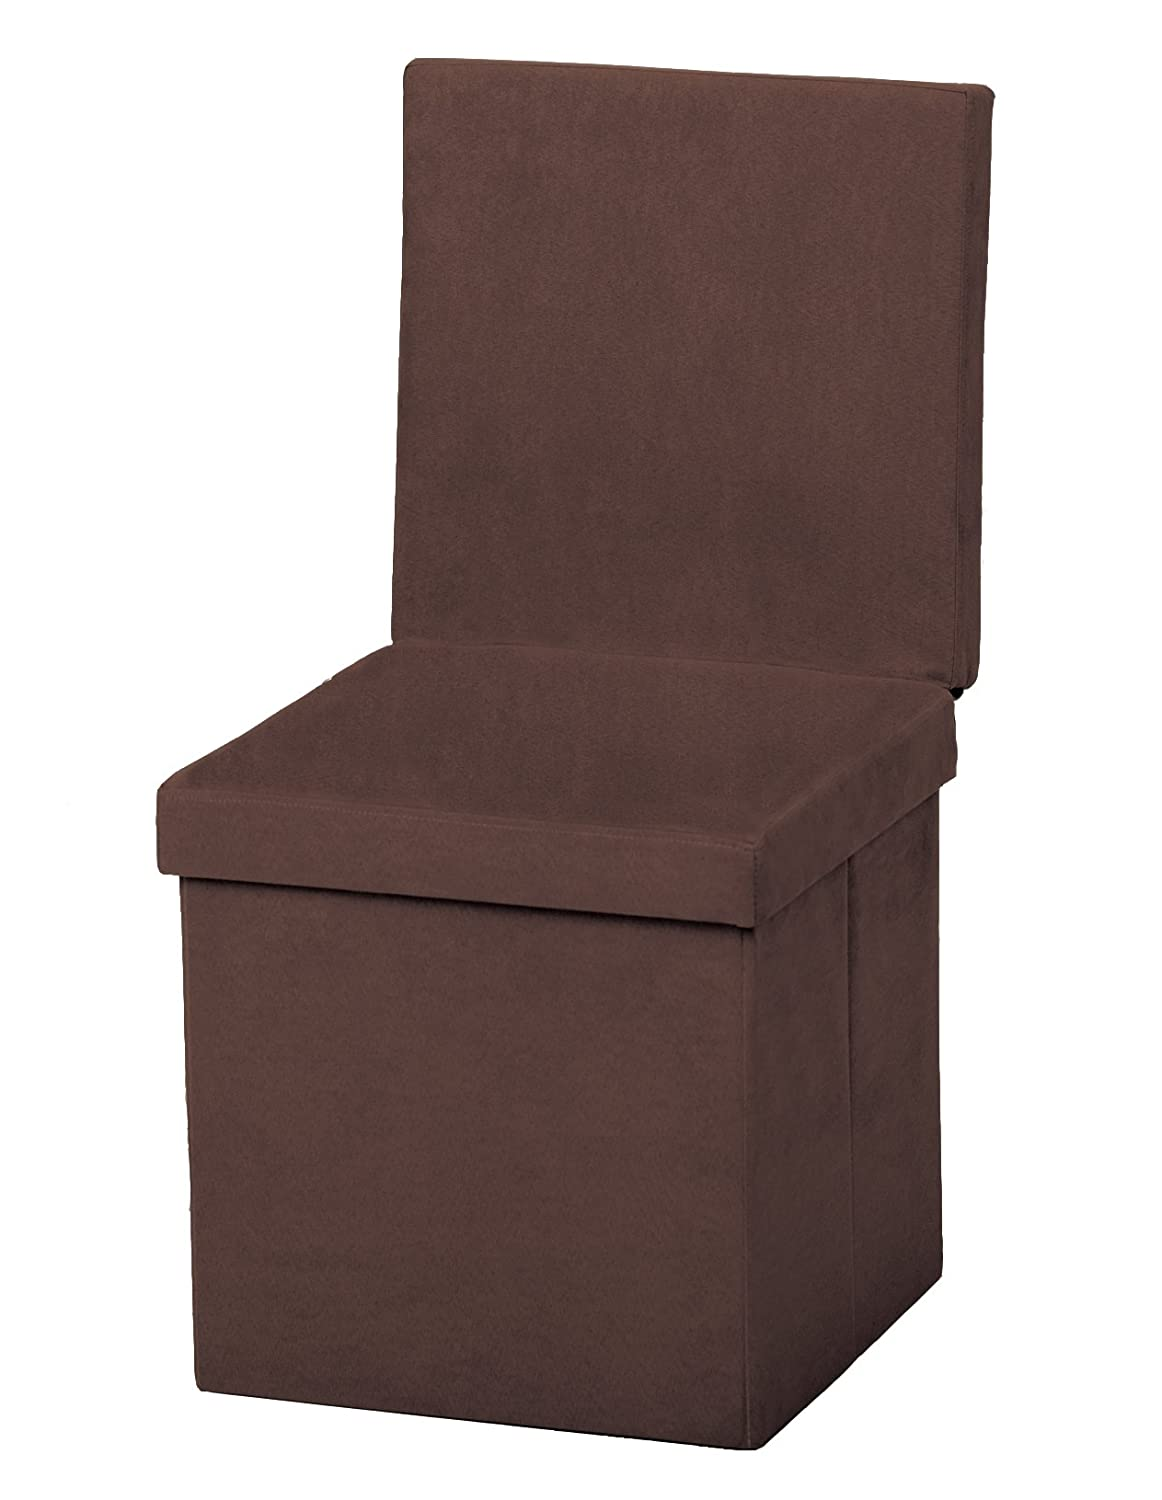 Pleasing Fresh Home Elements The Fhe Group Folding Chair Ottoman Chocolate Suede Alphanode Cool Chair Designs And Ideas Alphanodeonline